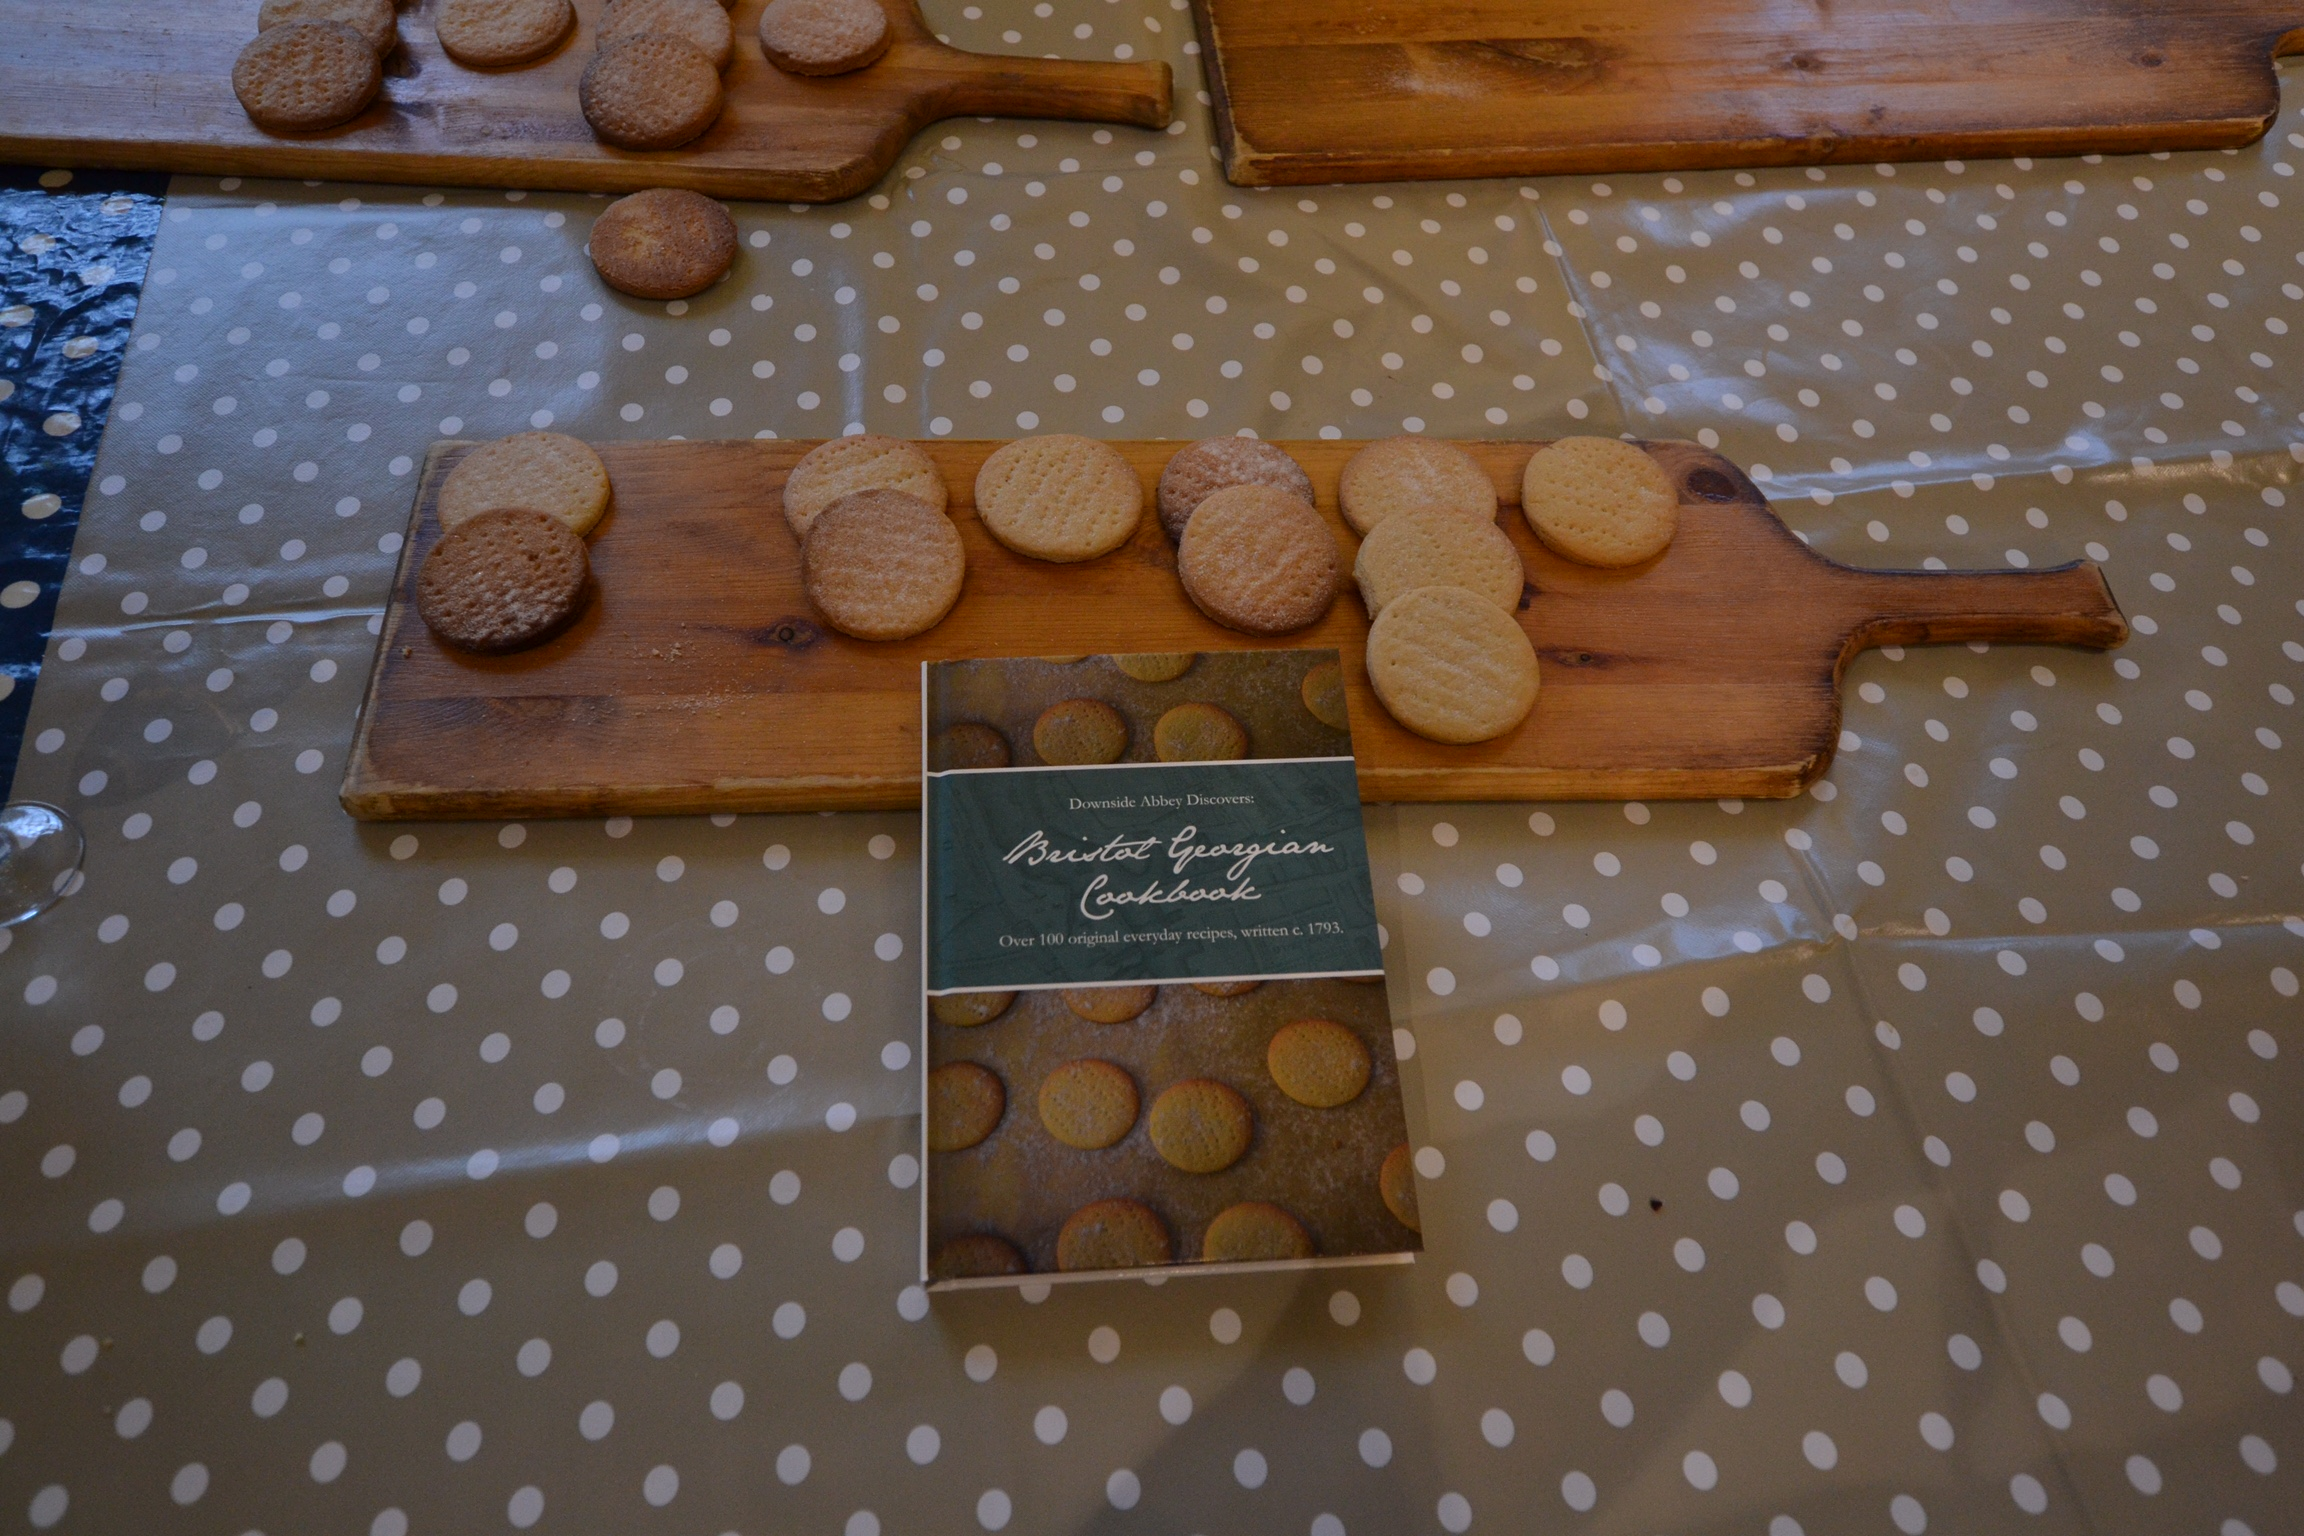 Biscuits on board next to cookbook